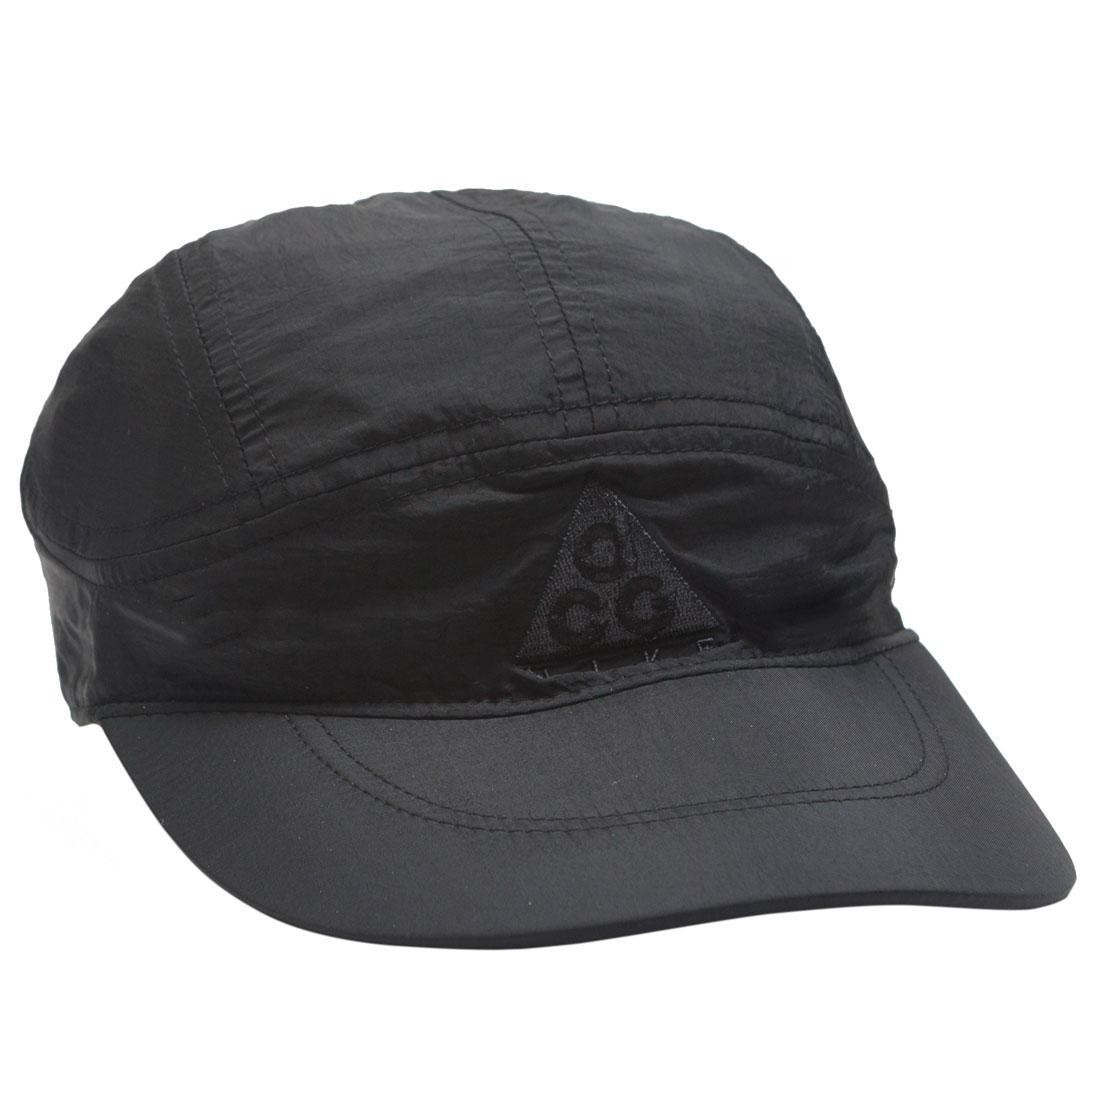 the latest 9a73c 4e594 nike men nrg acg tailwind adjustable cap black anthracite